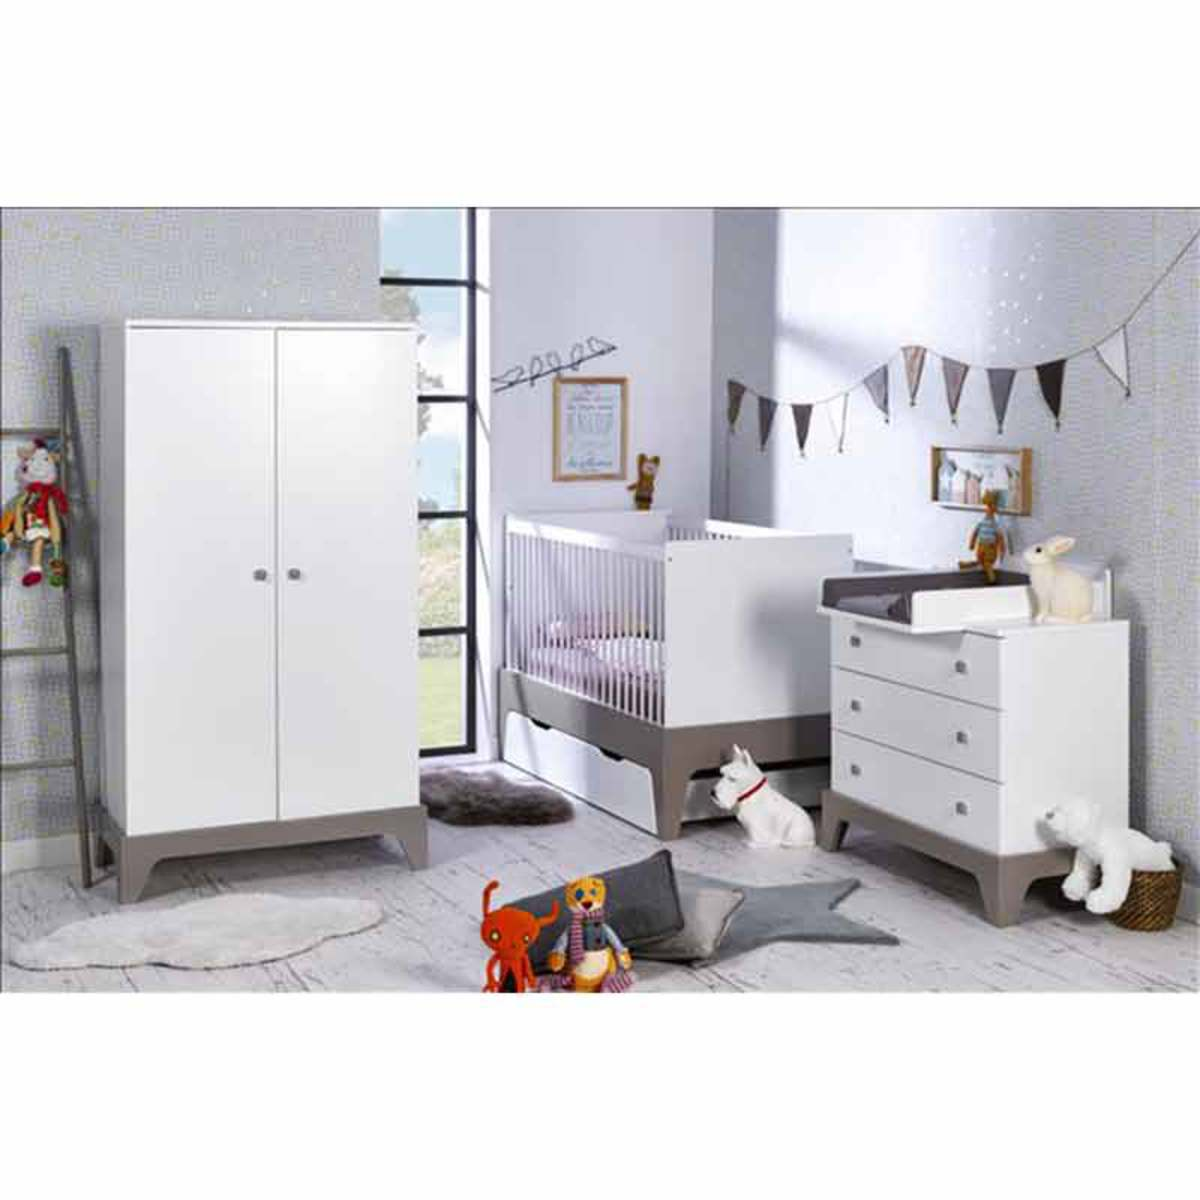 berceau lit bebe 70 x 140 cm paris evolutif barreaux blanc lin. Black Bedroom Furniture Sets. Home Design Ideas